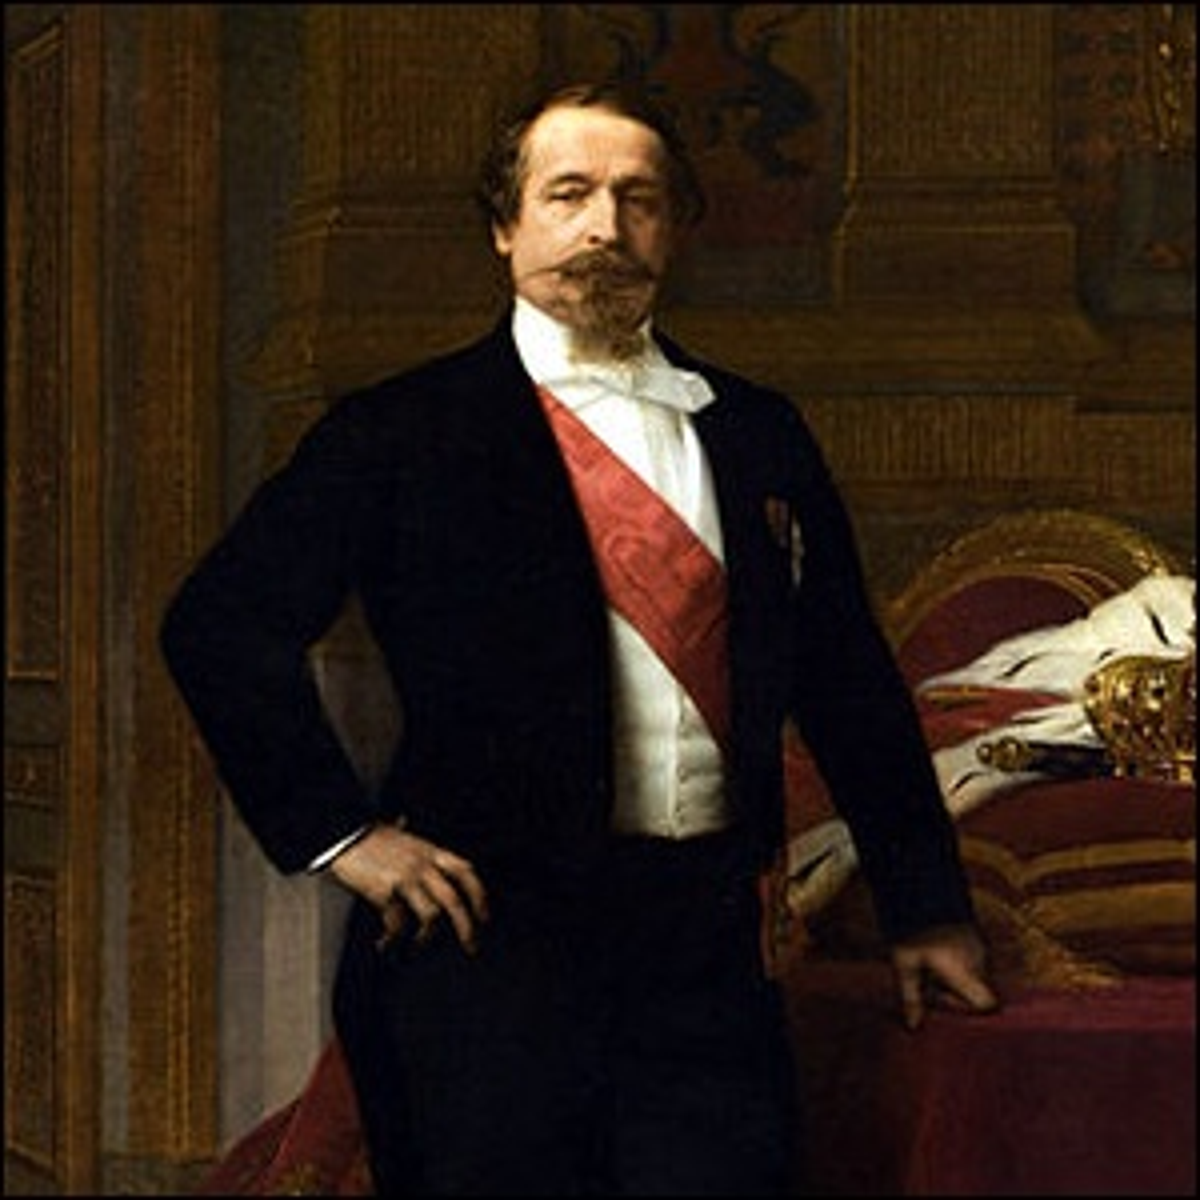 A portrait of Napoleon III wearing a white tie tuxedo and red sash.